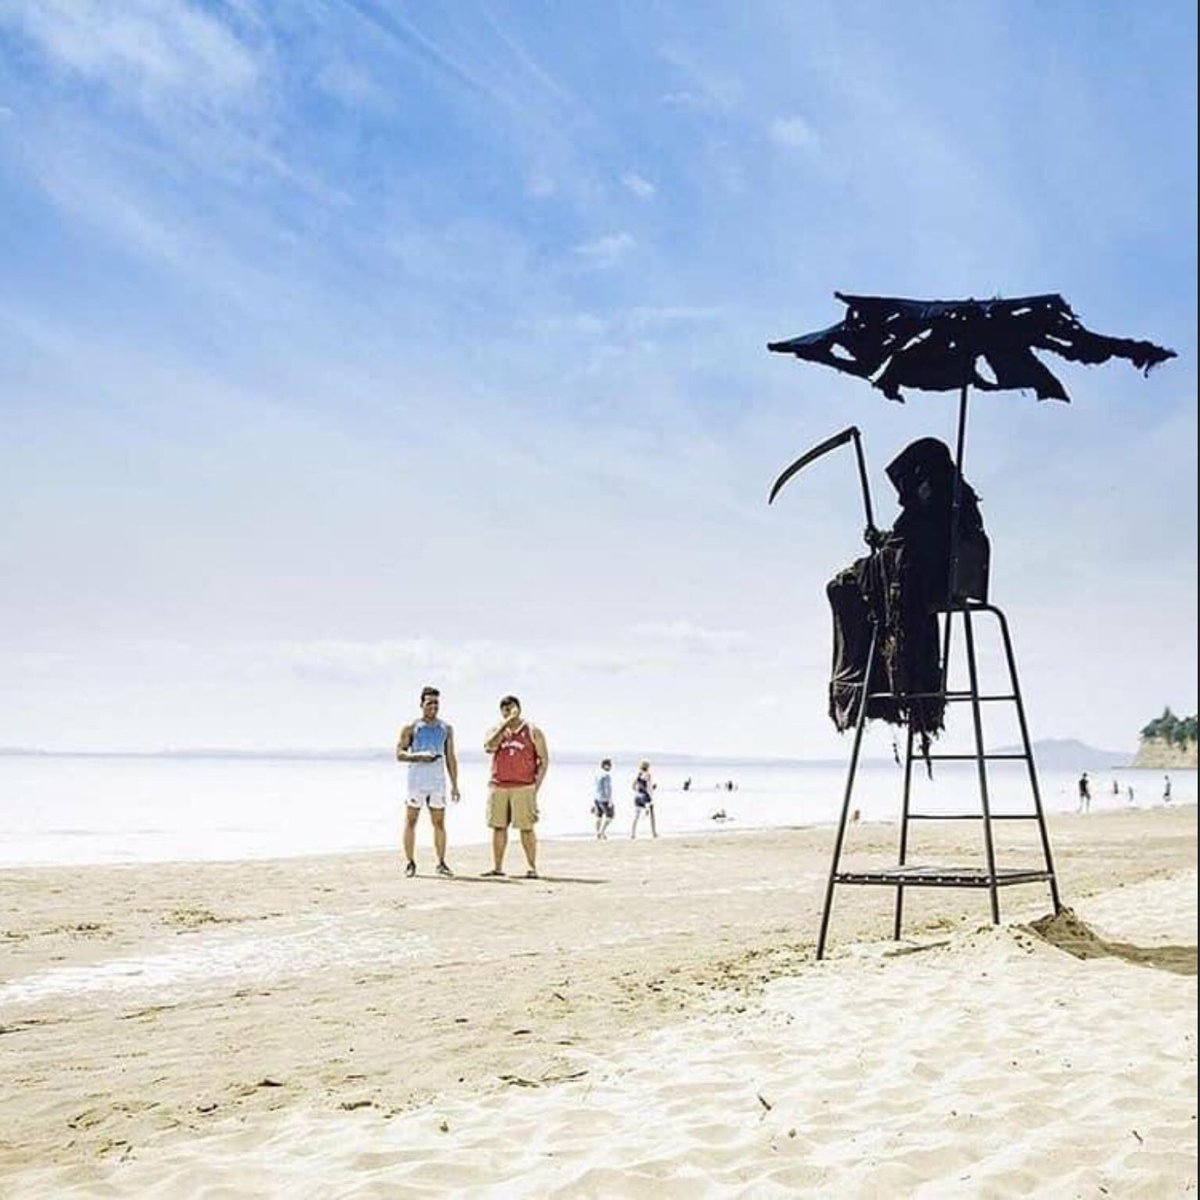 Attorney dressed as the Grim Reaper protests on Florida beaches